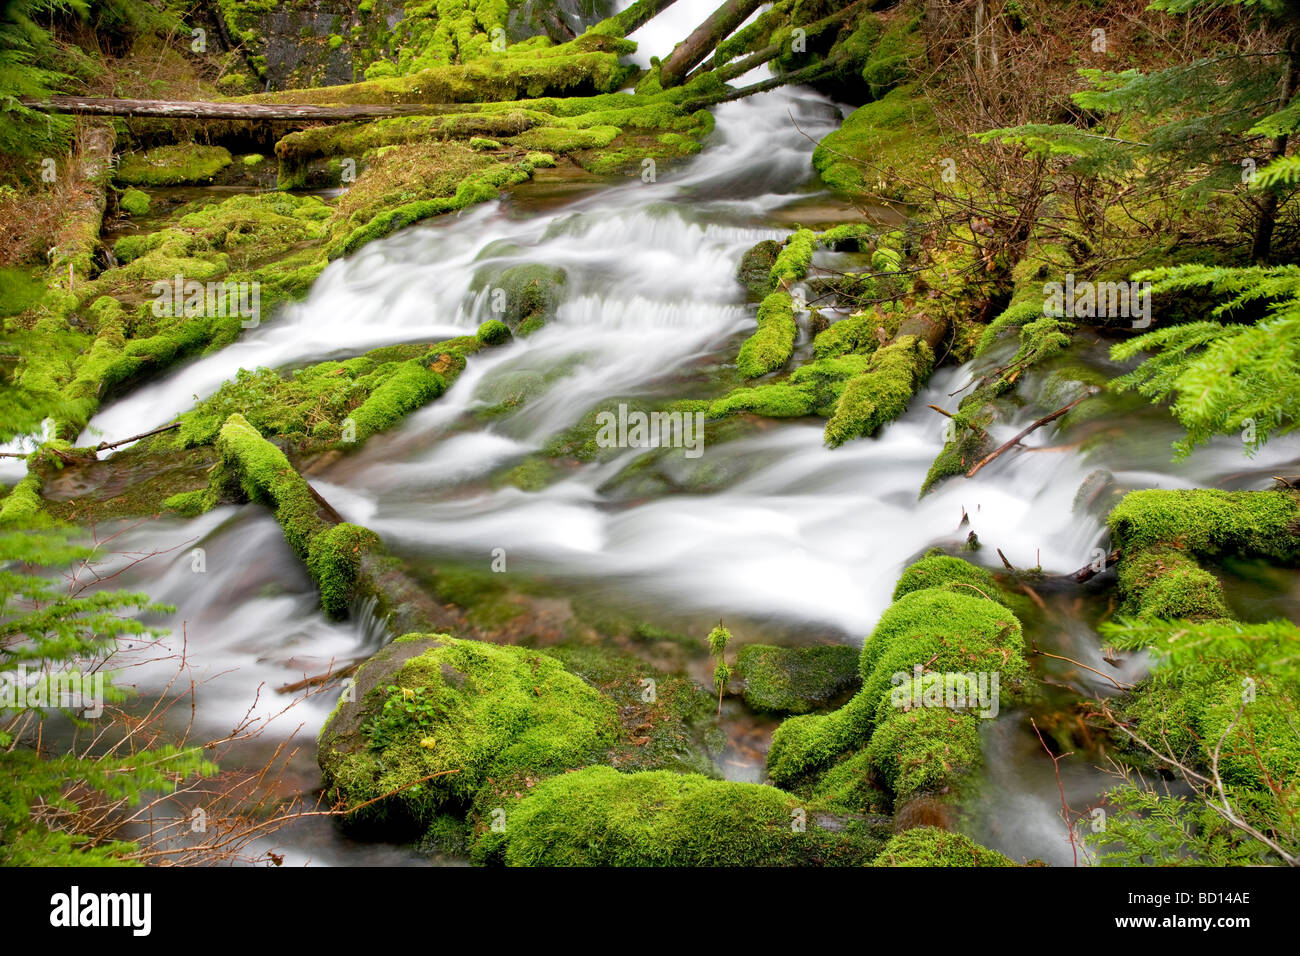 Big Spring Creek avec les roches moussues Gifford Pinchot National Forest Washington Photo Stock